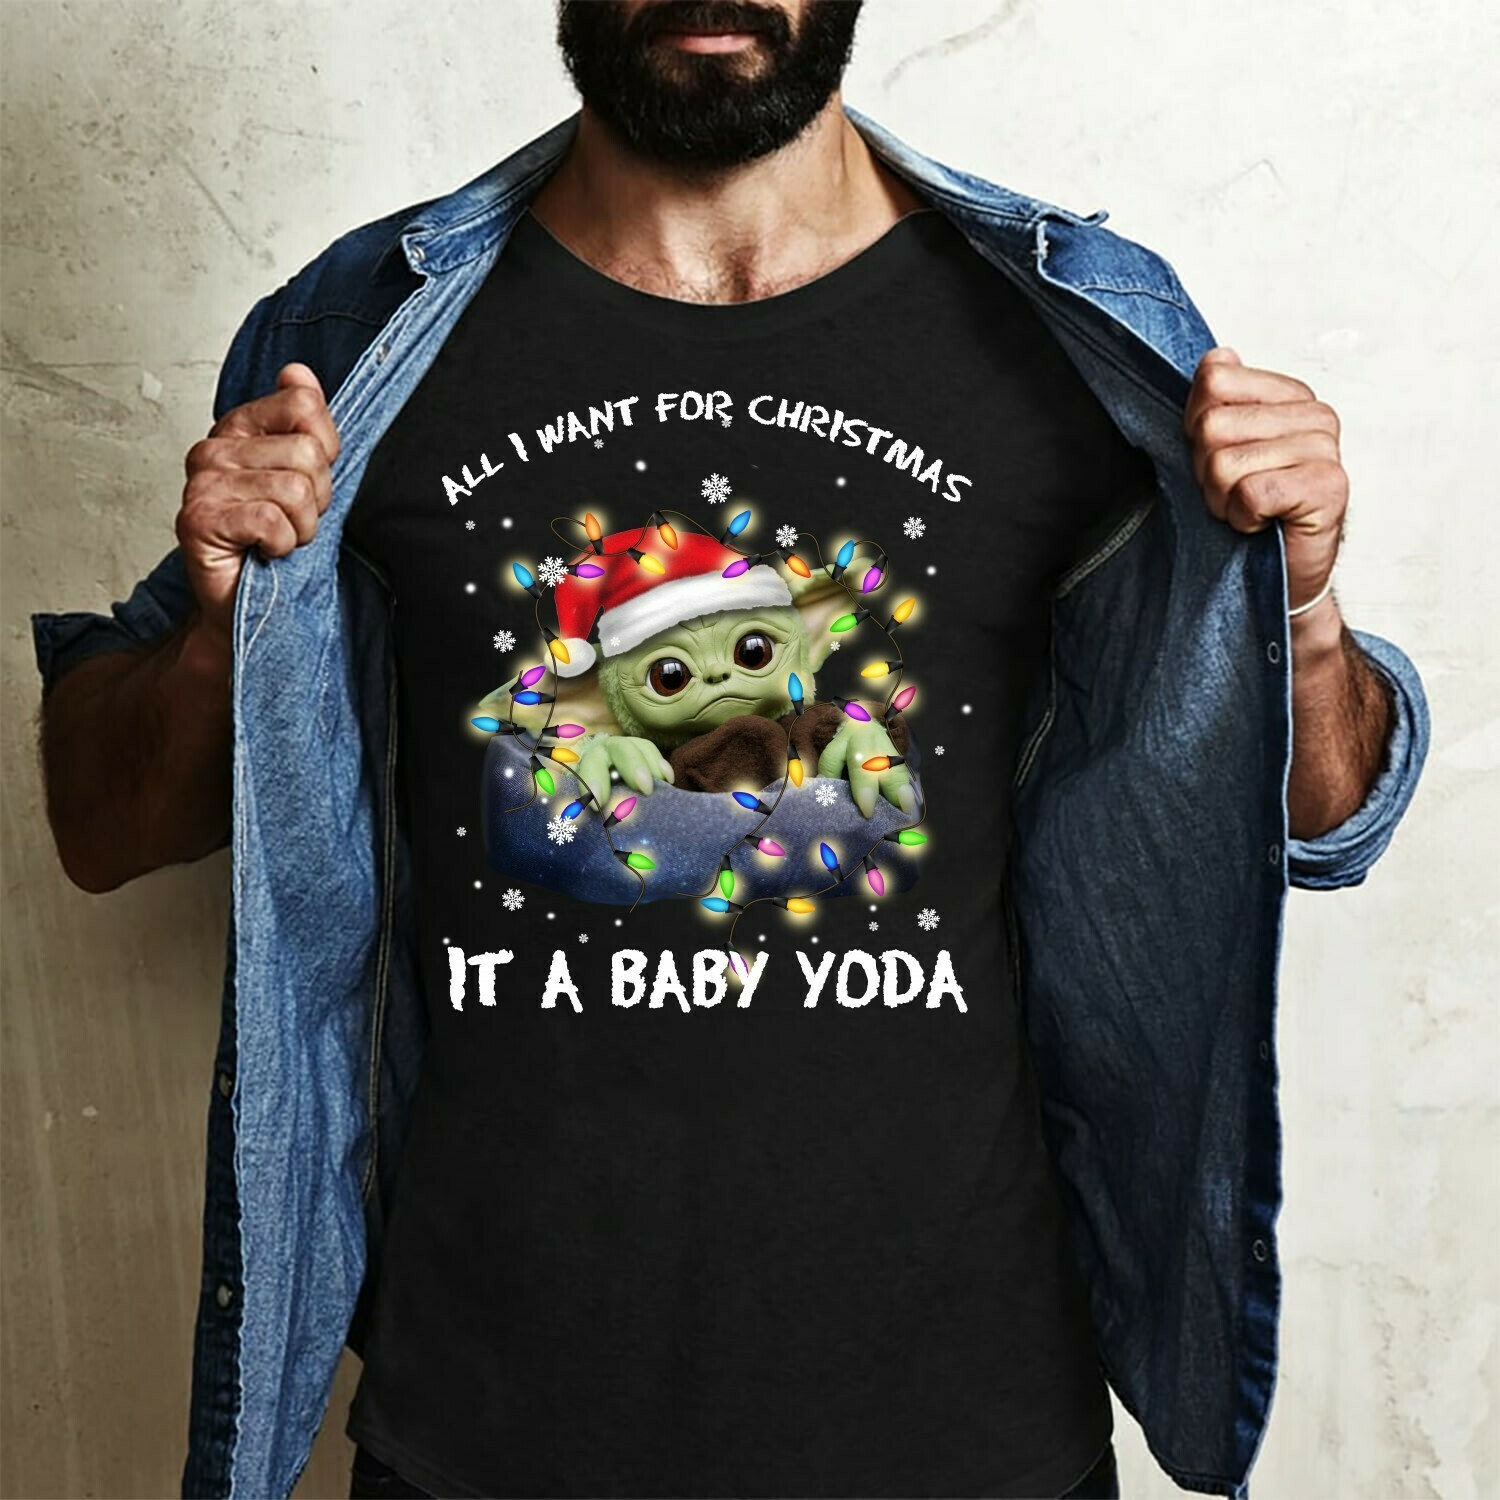 All I Want For Christmas Is A Baby Yoda,Star Wars The Mandalorian The Child When Your Song Comes On,Baby Humanoid T- Shirt Long Sleeve Sweatshirt Hoodie Jolly Family Gifts